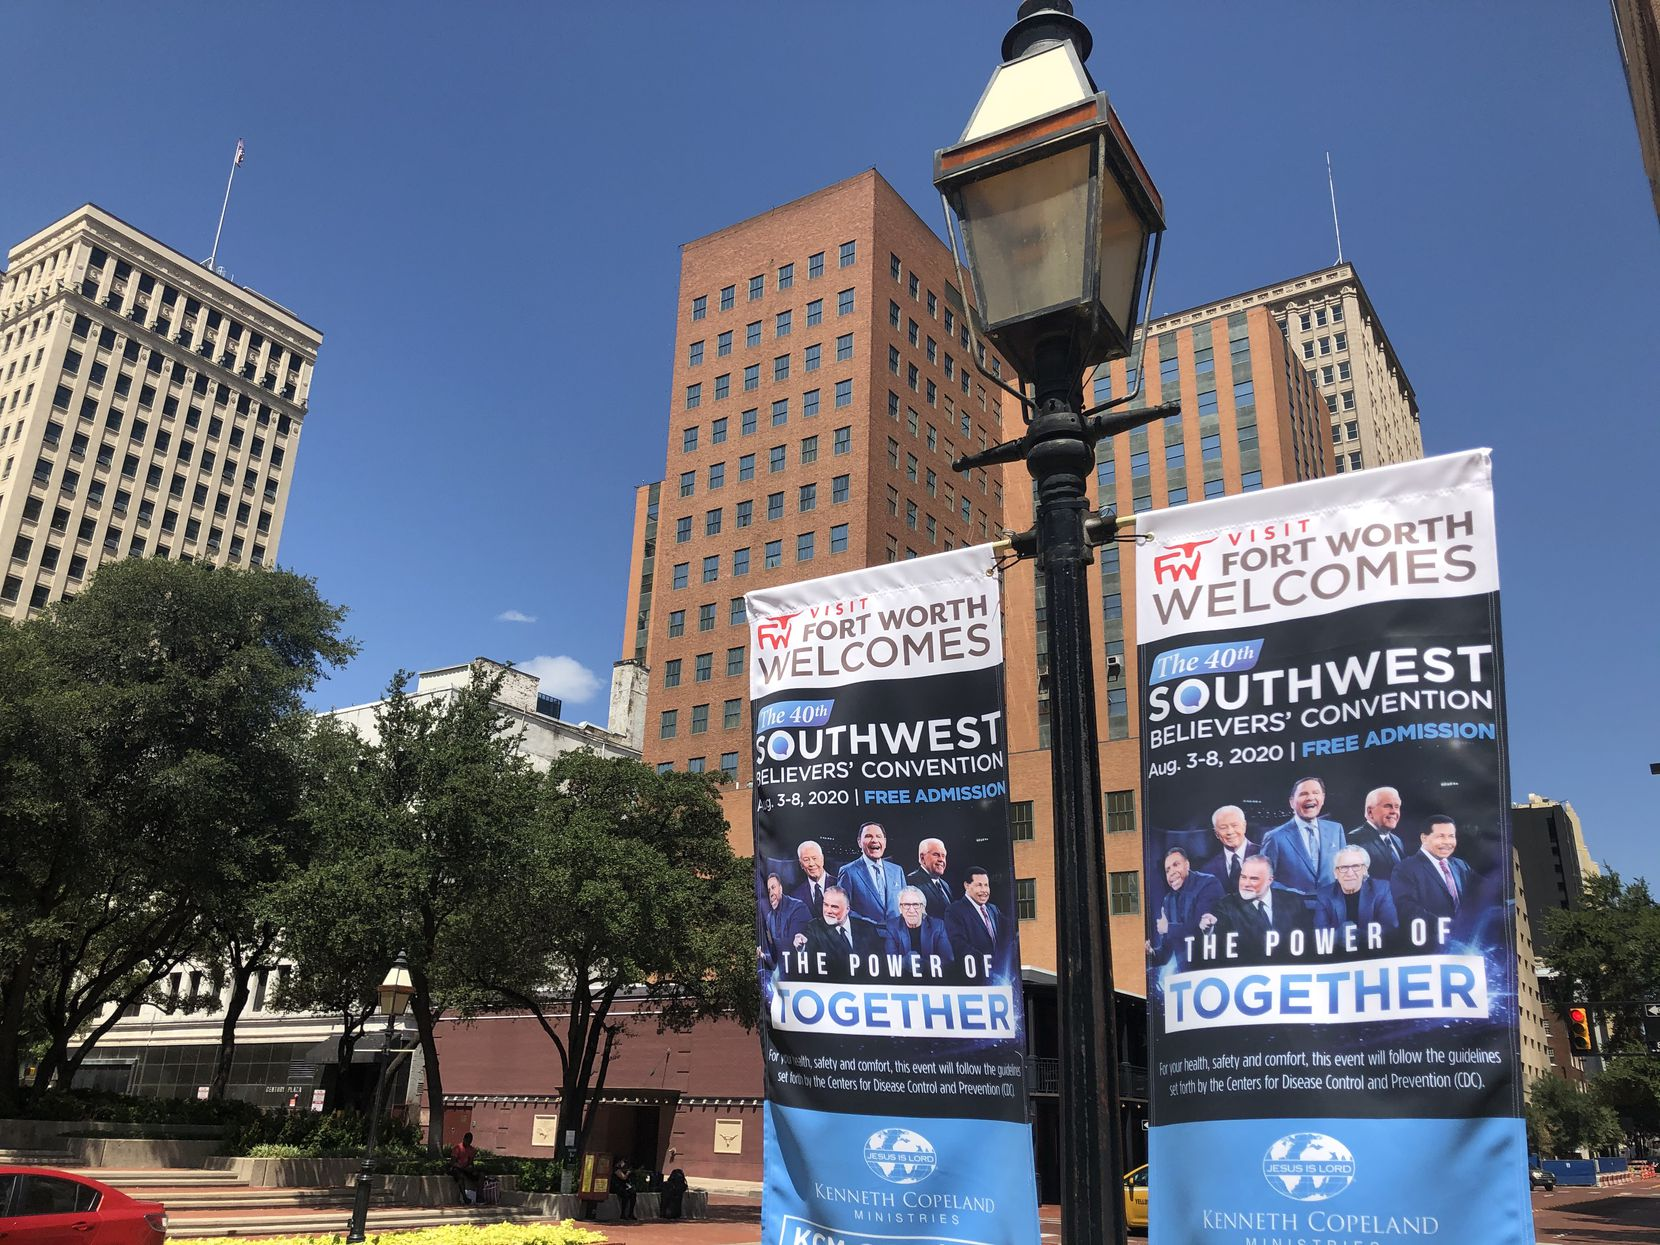 Banners for Kenneth Copeland's religious revival hang on Fort Worth streets. The event was Aug. 3-8, 2020, during a pandemic.